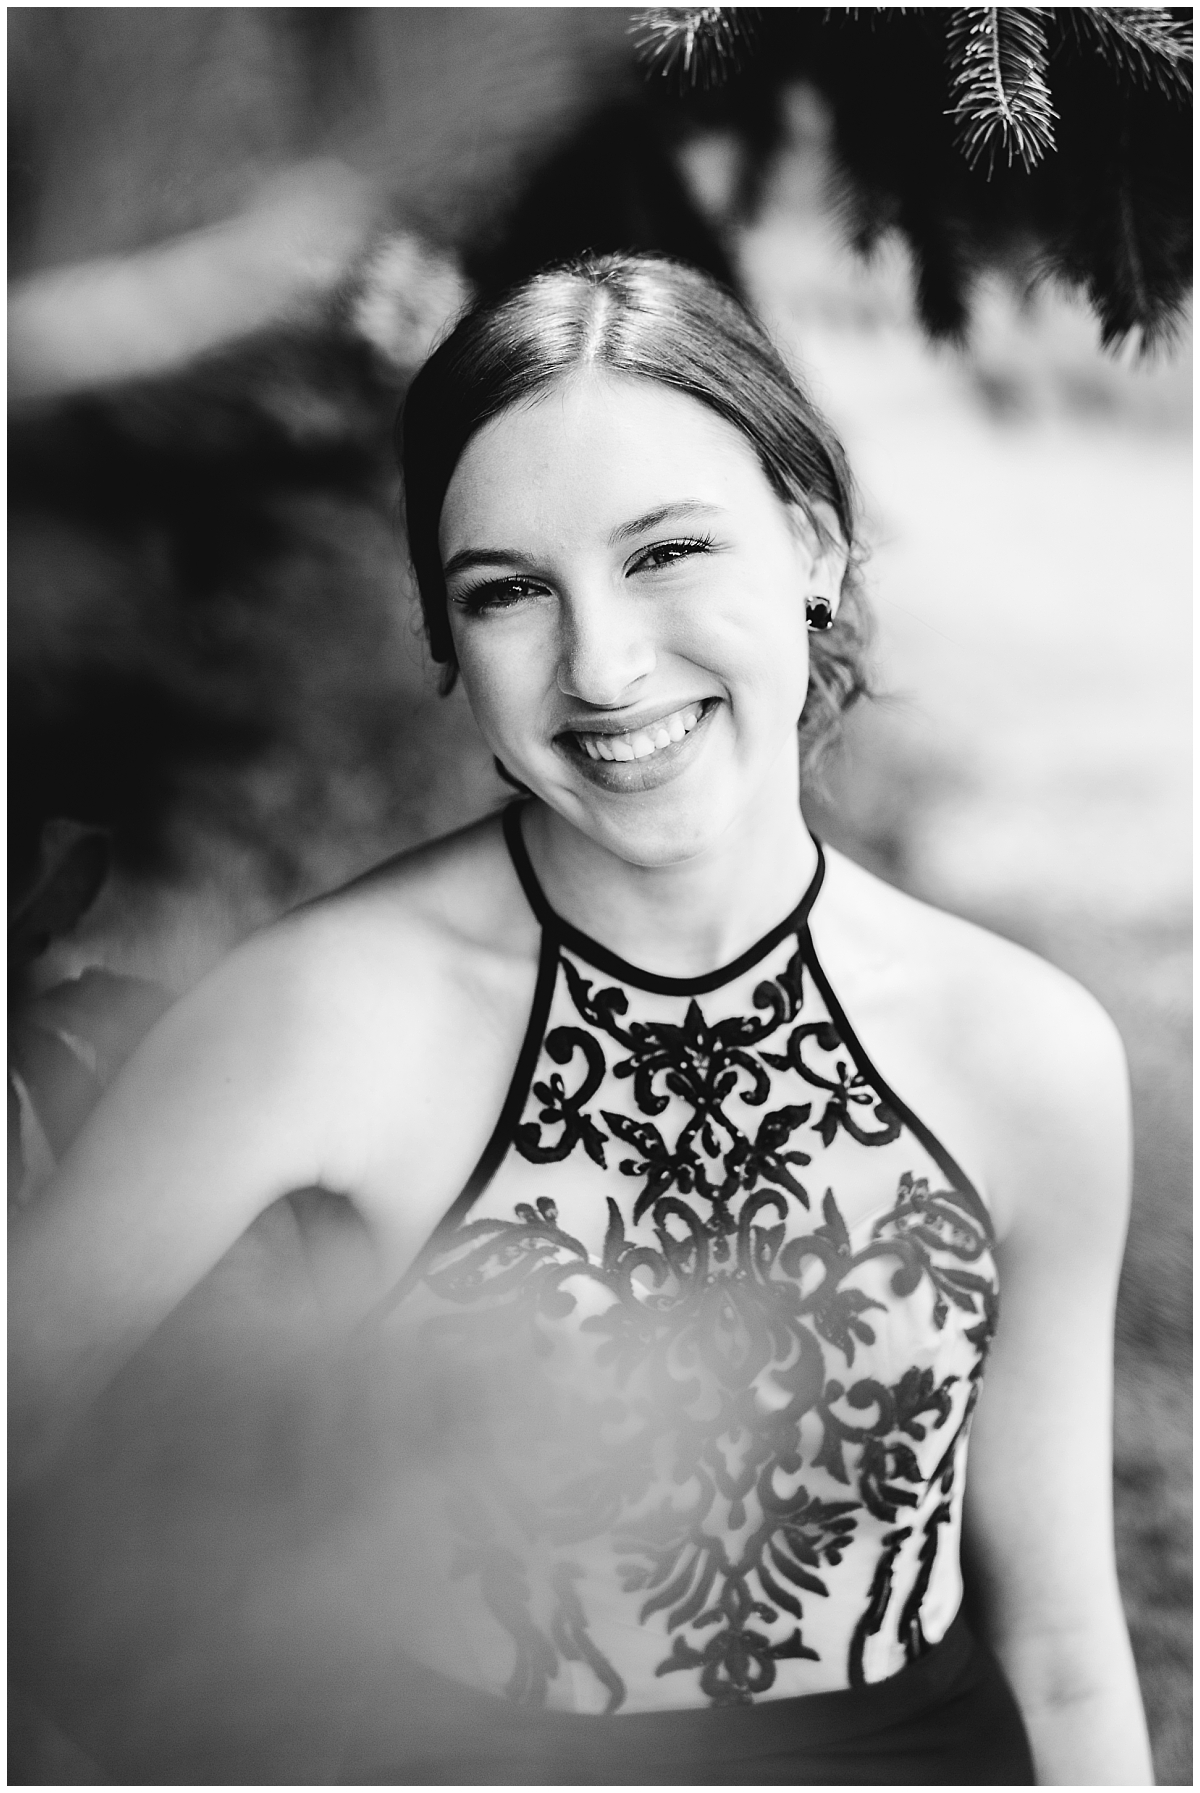 abbotsford-british-columbia- prom photographer- graduation photographer- senior photography- prom- girl in formal gown- claudia-wyler-photography